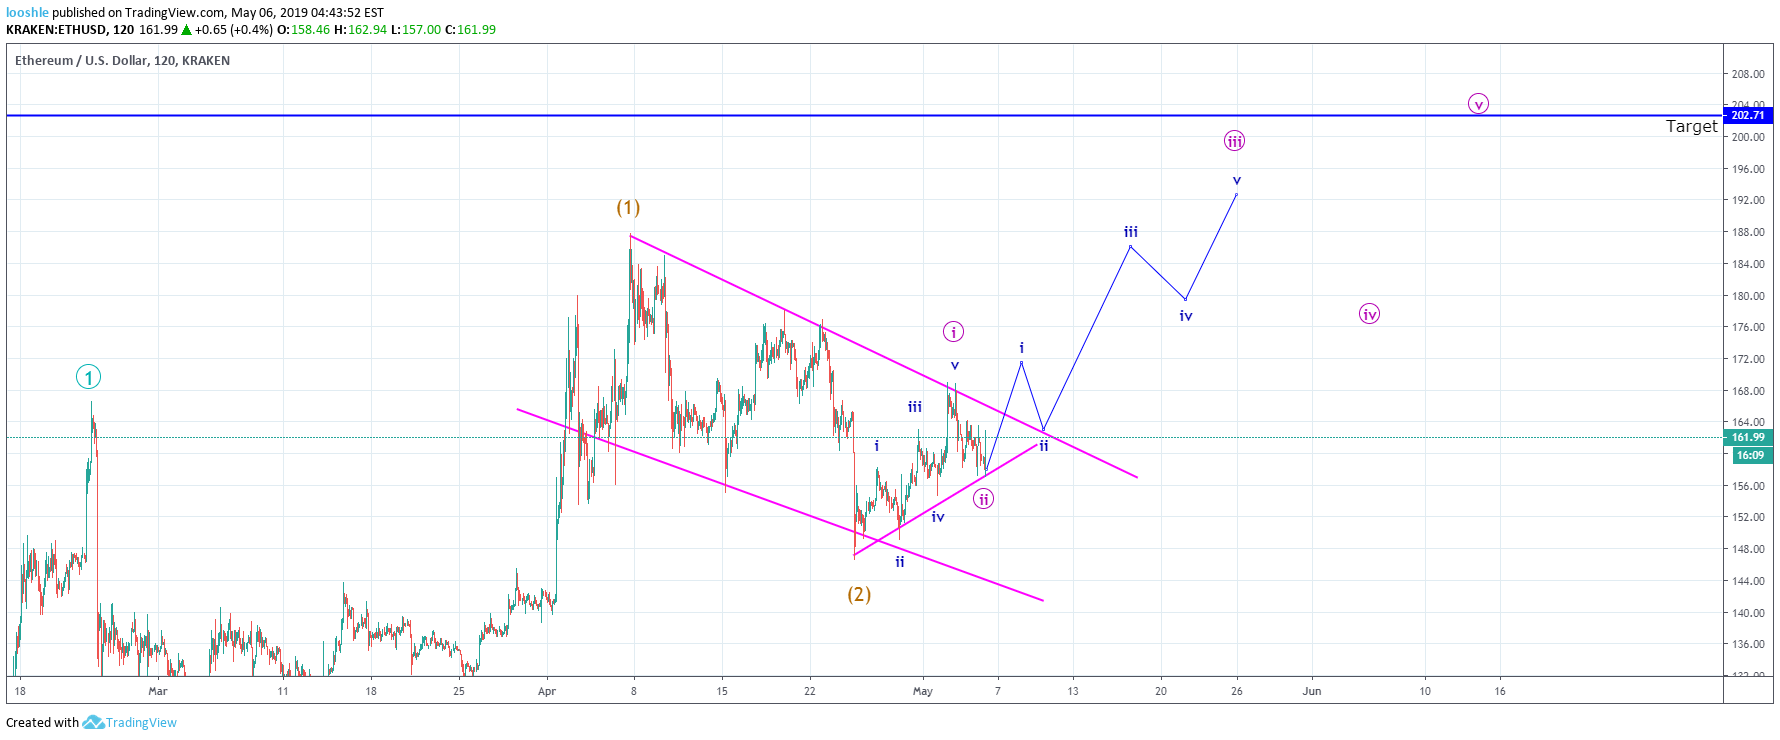 Medium Term ETH Road Map for KRAKEN:ETHUSD by looshle ... on map of mas, map of nam, map of ire, map of gha, map of pak, map of swe, map of middle english, map of wynn, map of vir, map of arg, map of ane, map of chi, map of ita, map of gam, map of fiji, map of ooh, map of alg, map of ger,